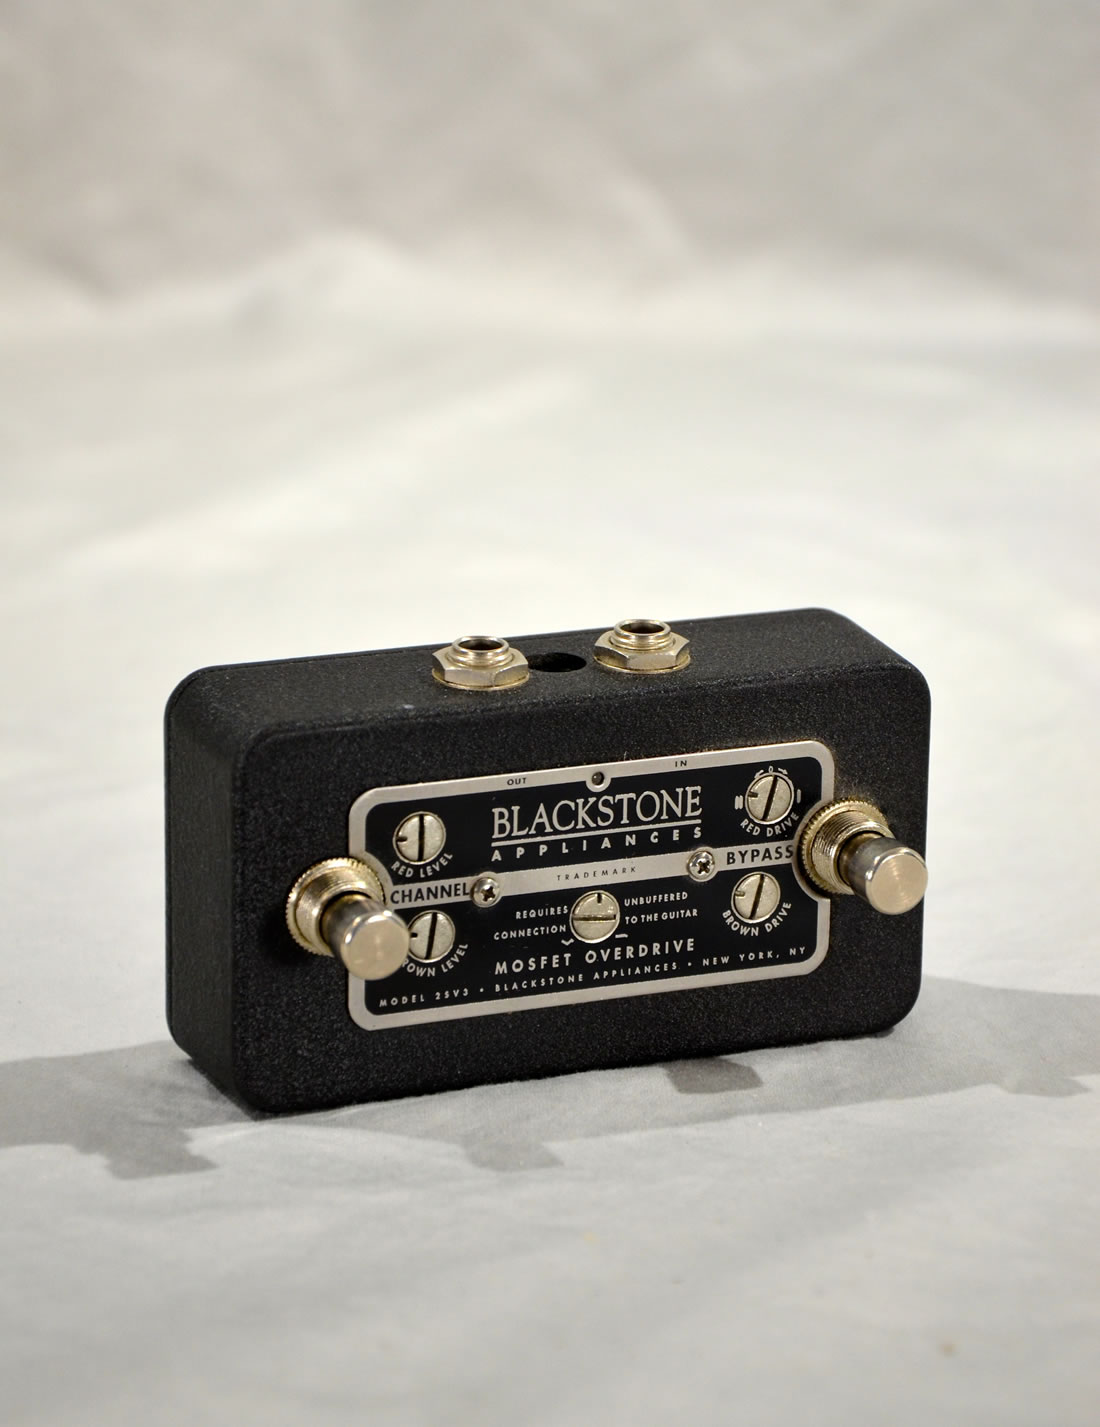 Blackstone Appliances MOSFET OVERDRIVE Pedal